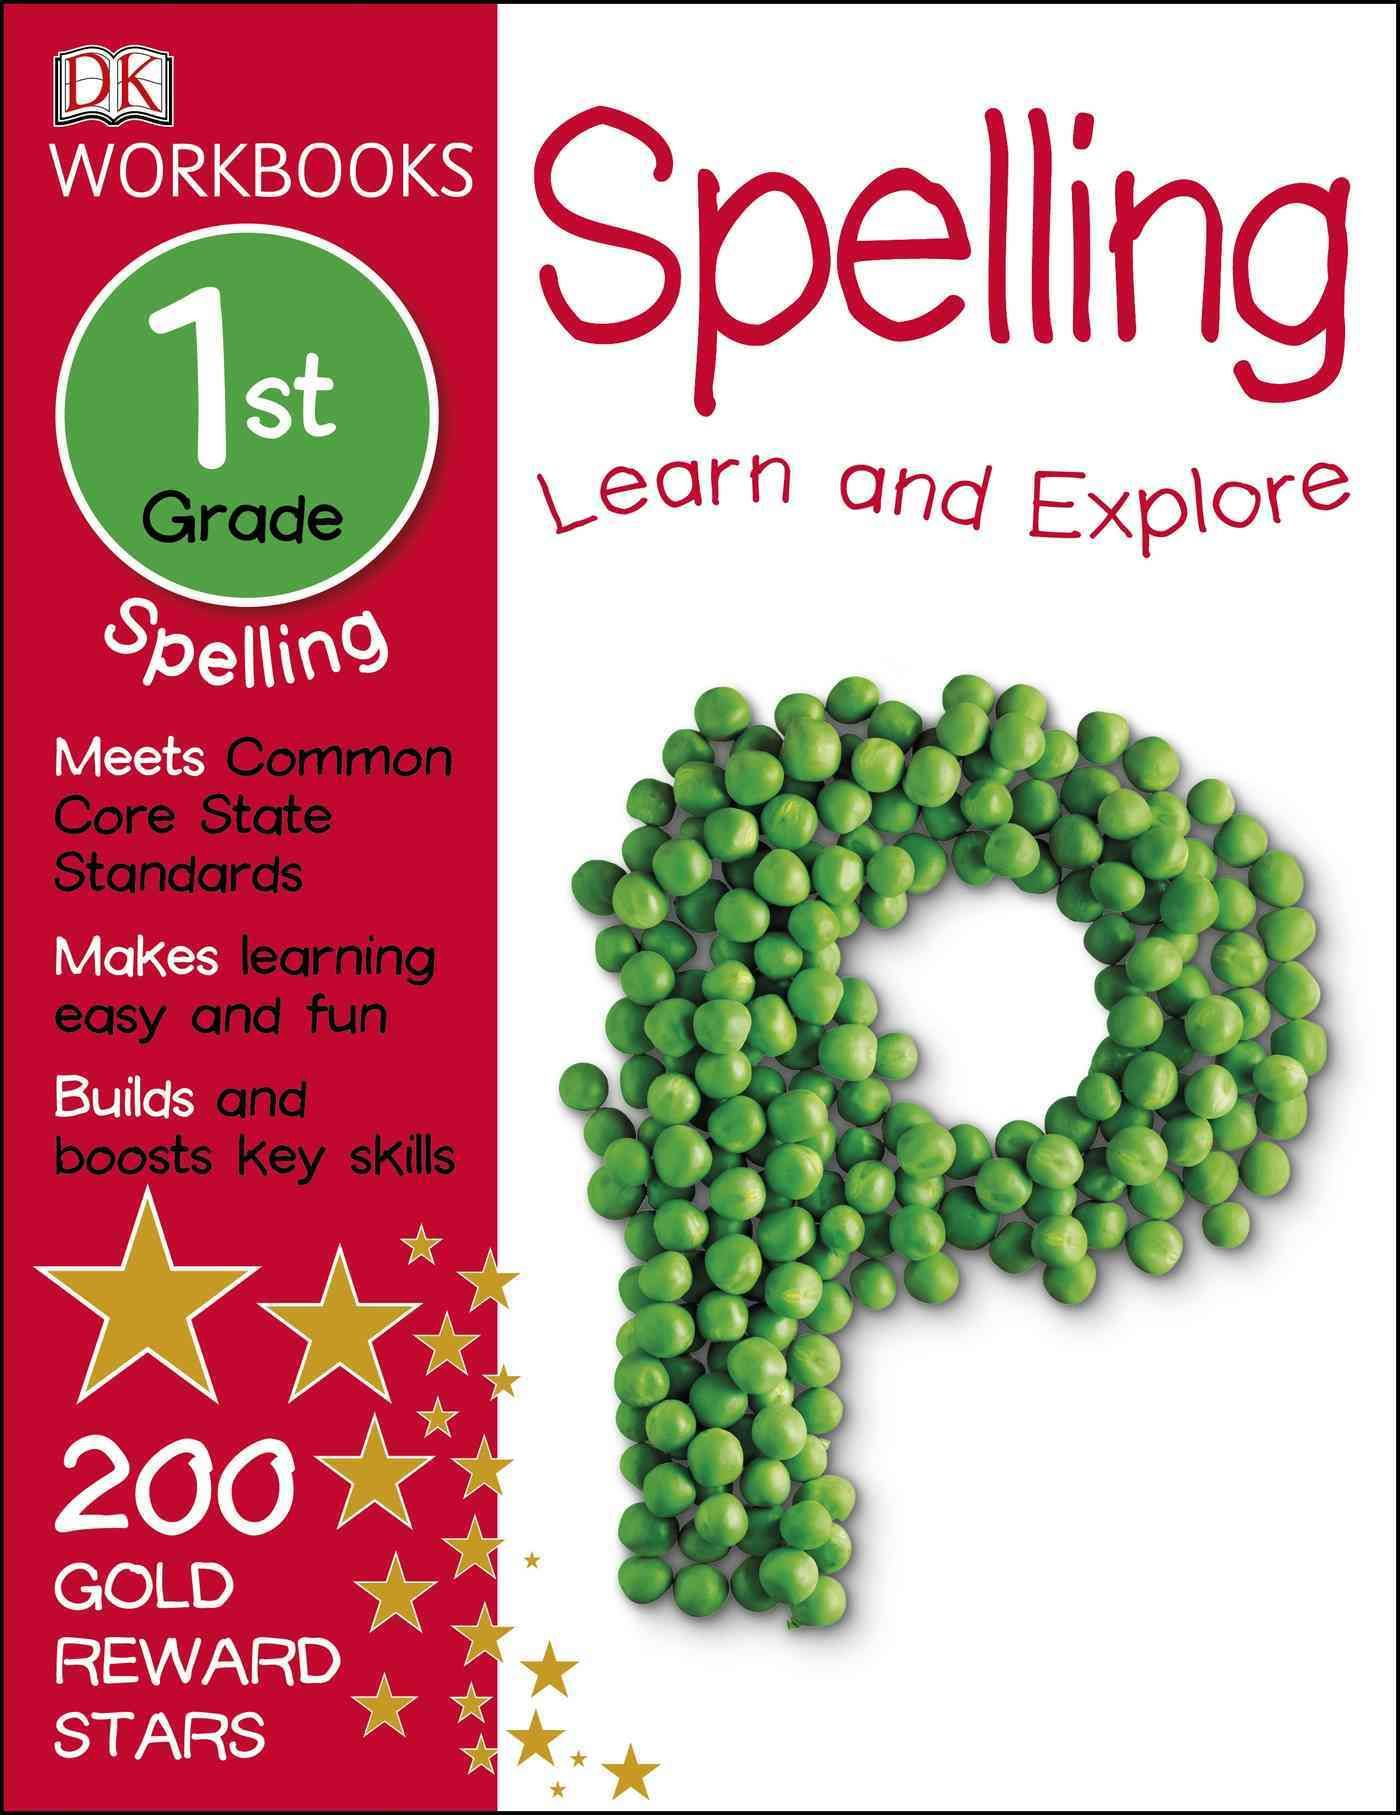 Dk Workbooks Spelling First Grade Is A Great Tool To